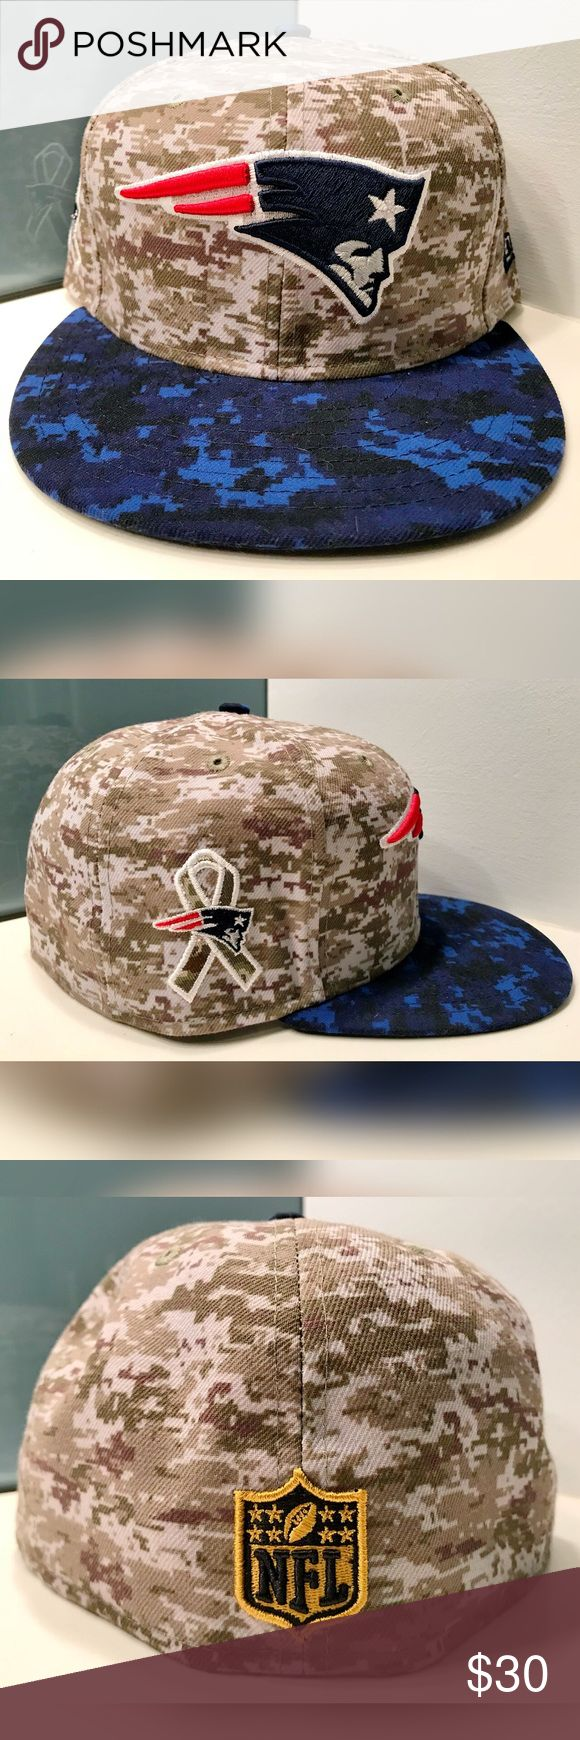 New Era New England Patriots Camo Fitted Hat 7 3/8 Salute To Service 2017, New Era Fitted Hat.  Digicam print.  Keep it 💯 New Era Accessories Hats